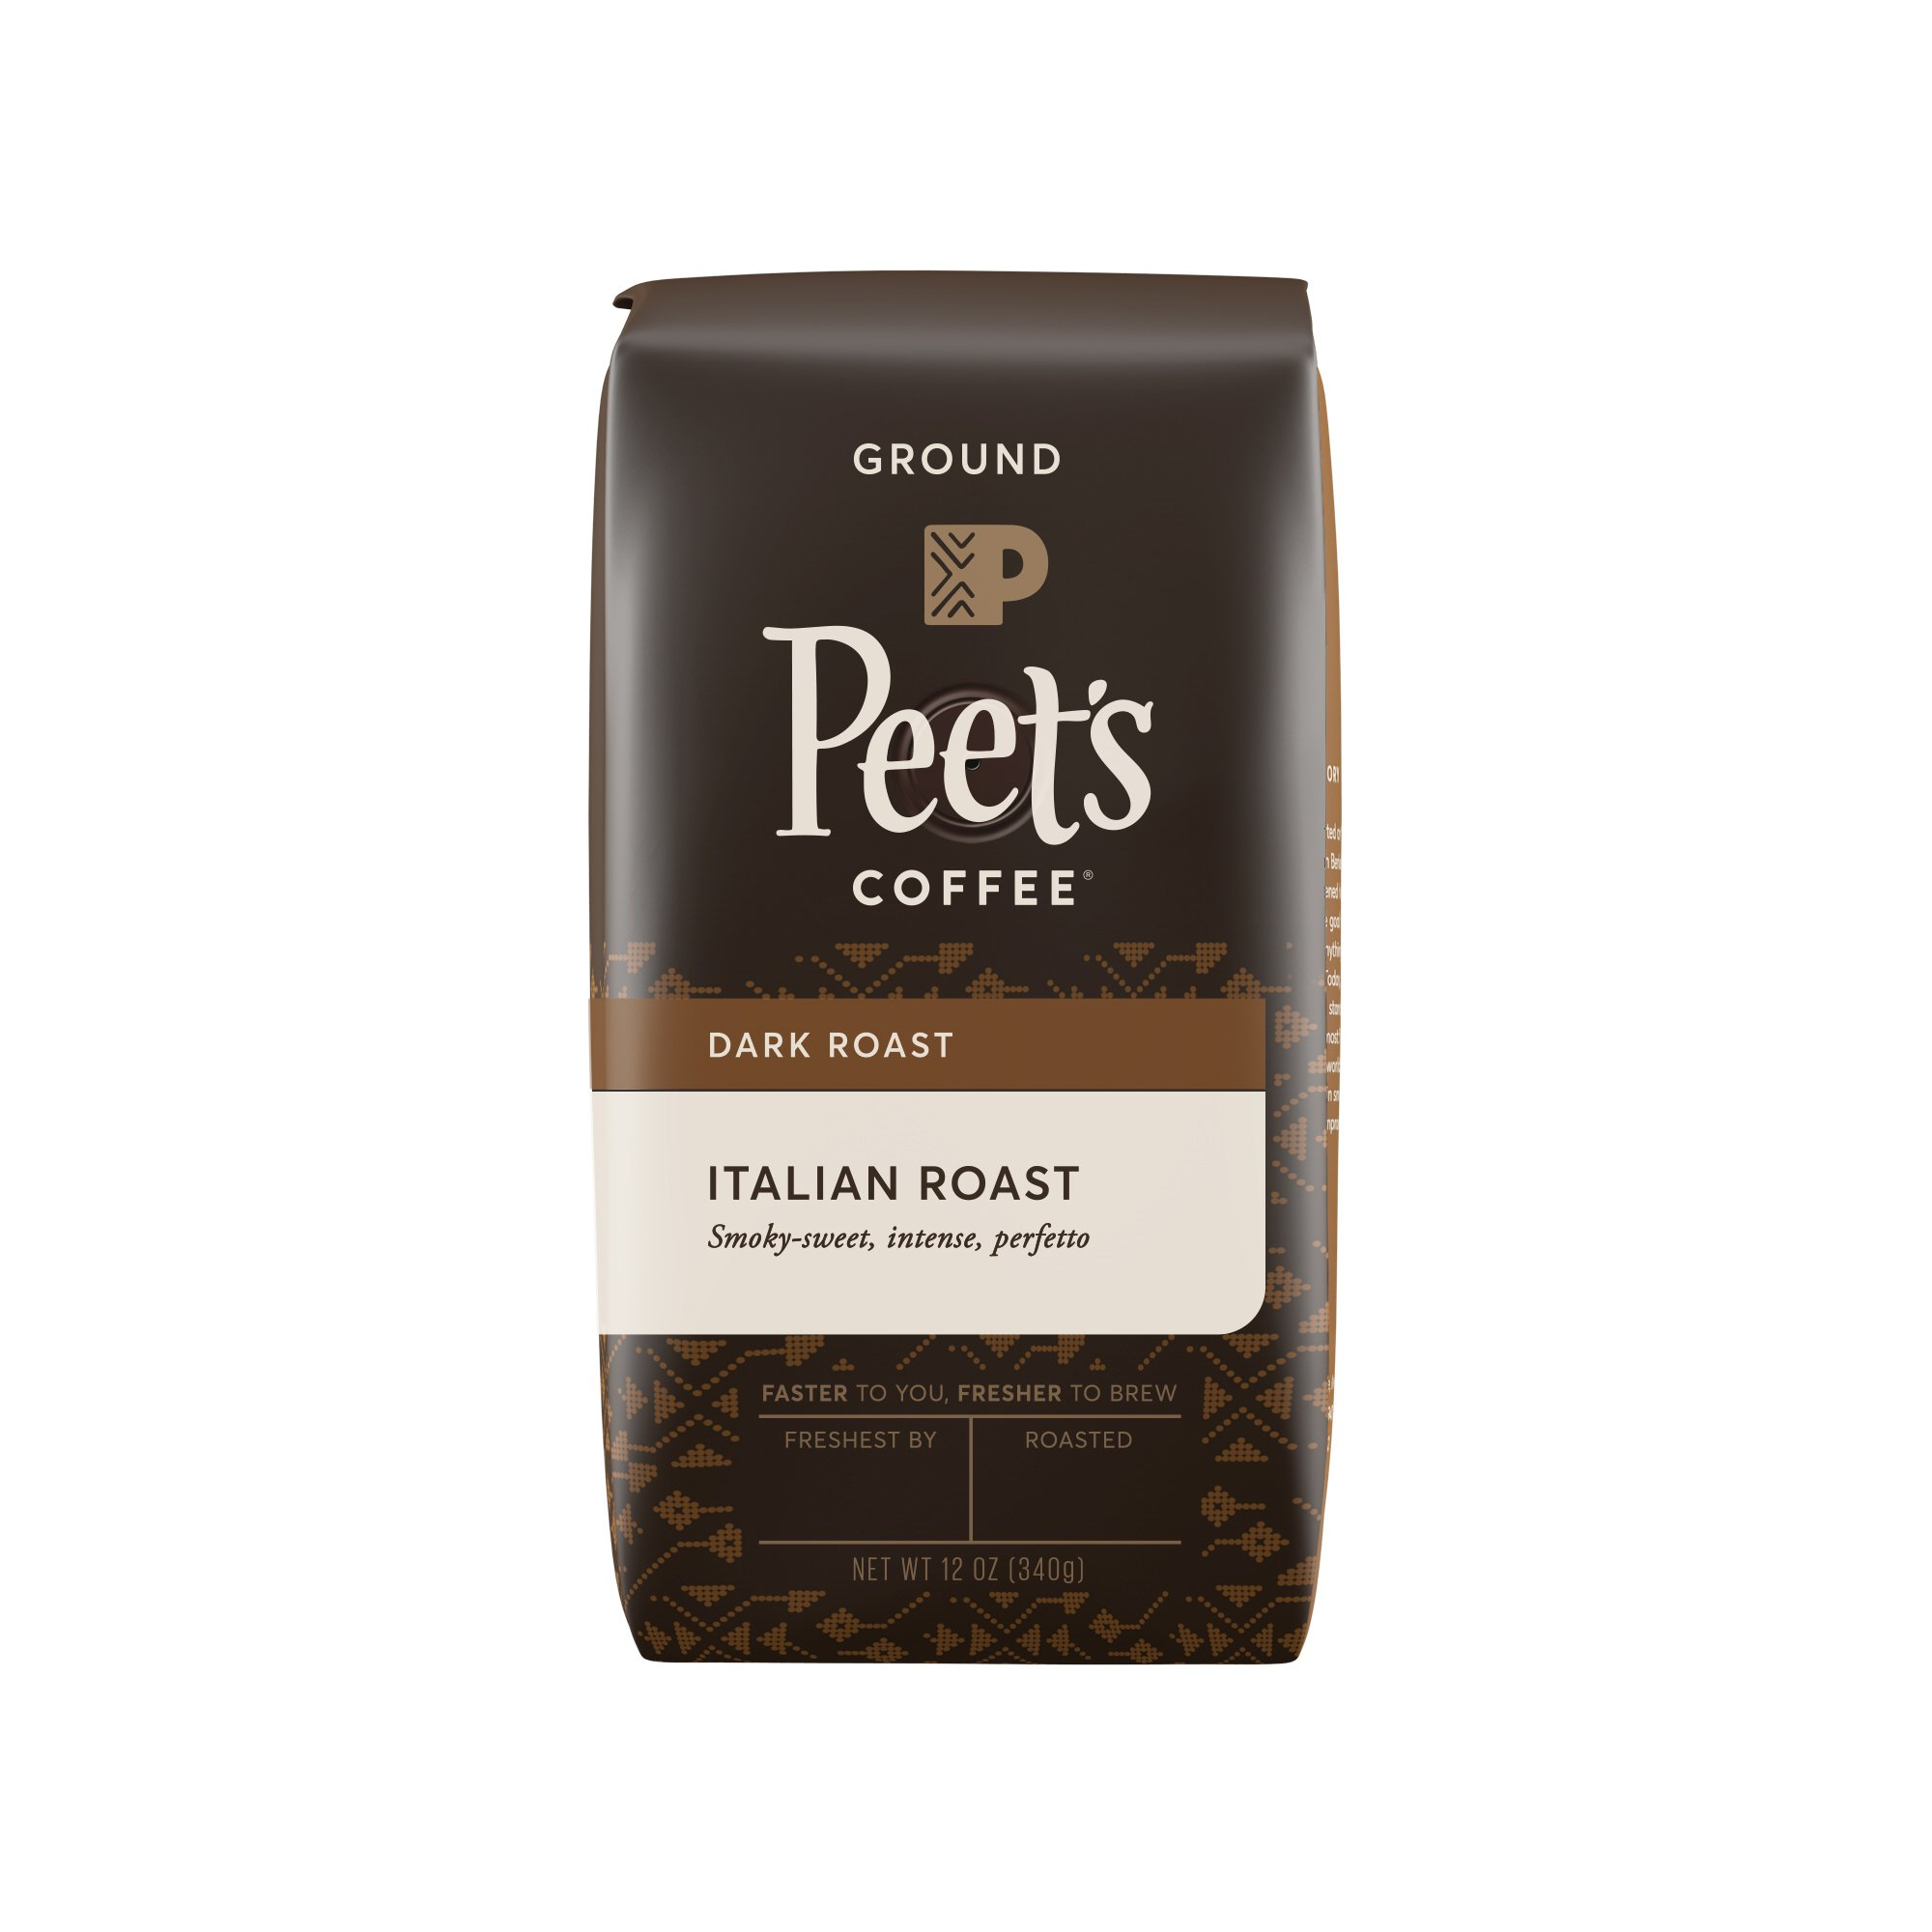 Peet's Coffee, Italian Roast, Dark Roast, Ground Coffee, 12 oz. Bag, Bold, Intense, & Flavorful Deep Roasted Blend of Latin America & Pacific Coffees, with A Full Body, Great Coffee for Espresso